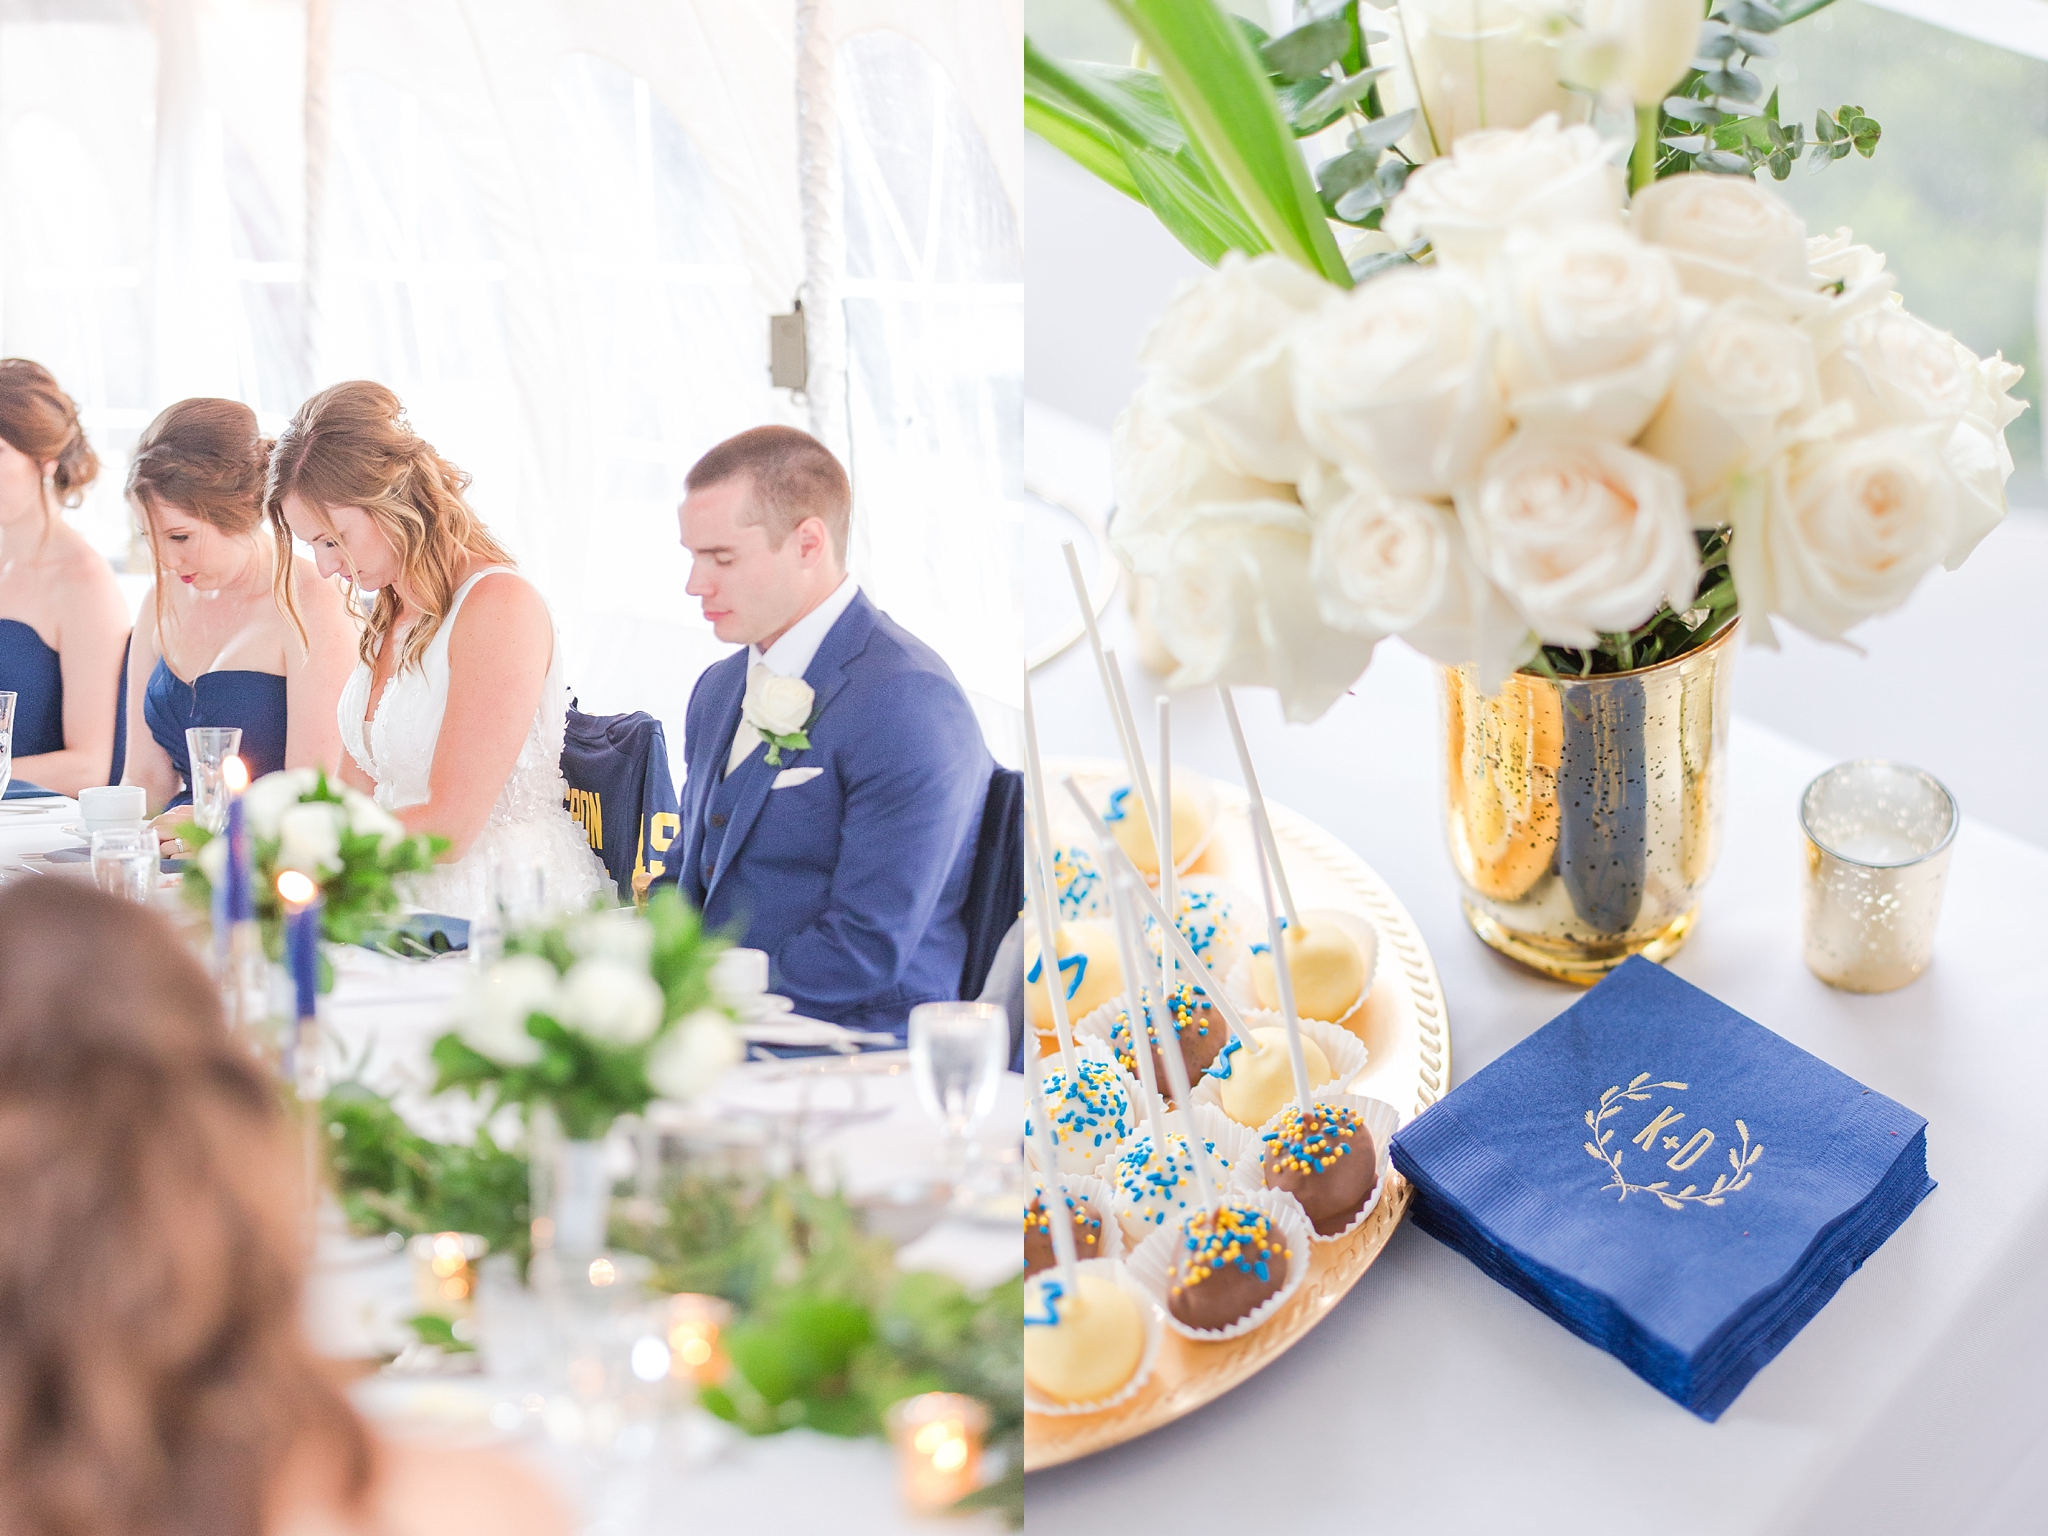 joyful-candid-laid-back-wedding-photos-in-ann-arbor-michigan-and-at-the-eagle-crest-golf-resort-by-courtney-carolyn-photography_0109.jpg